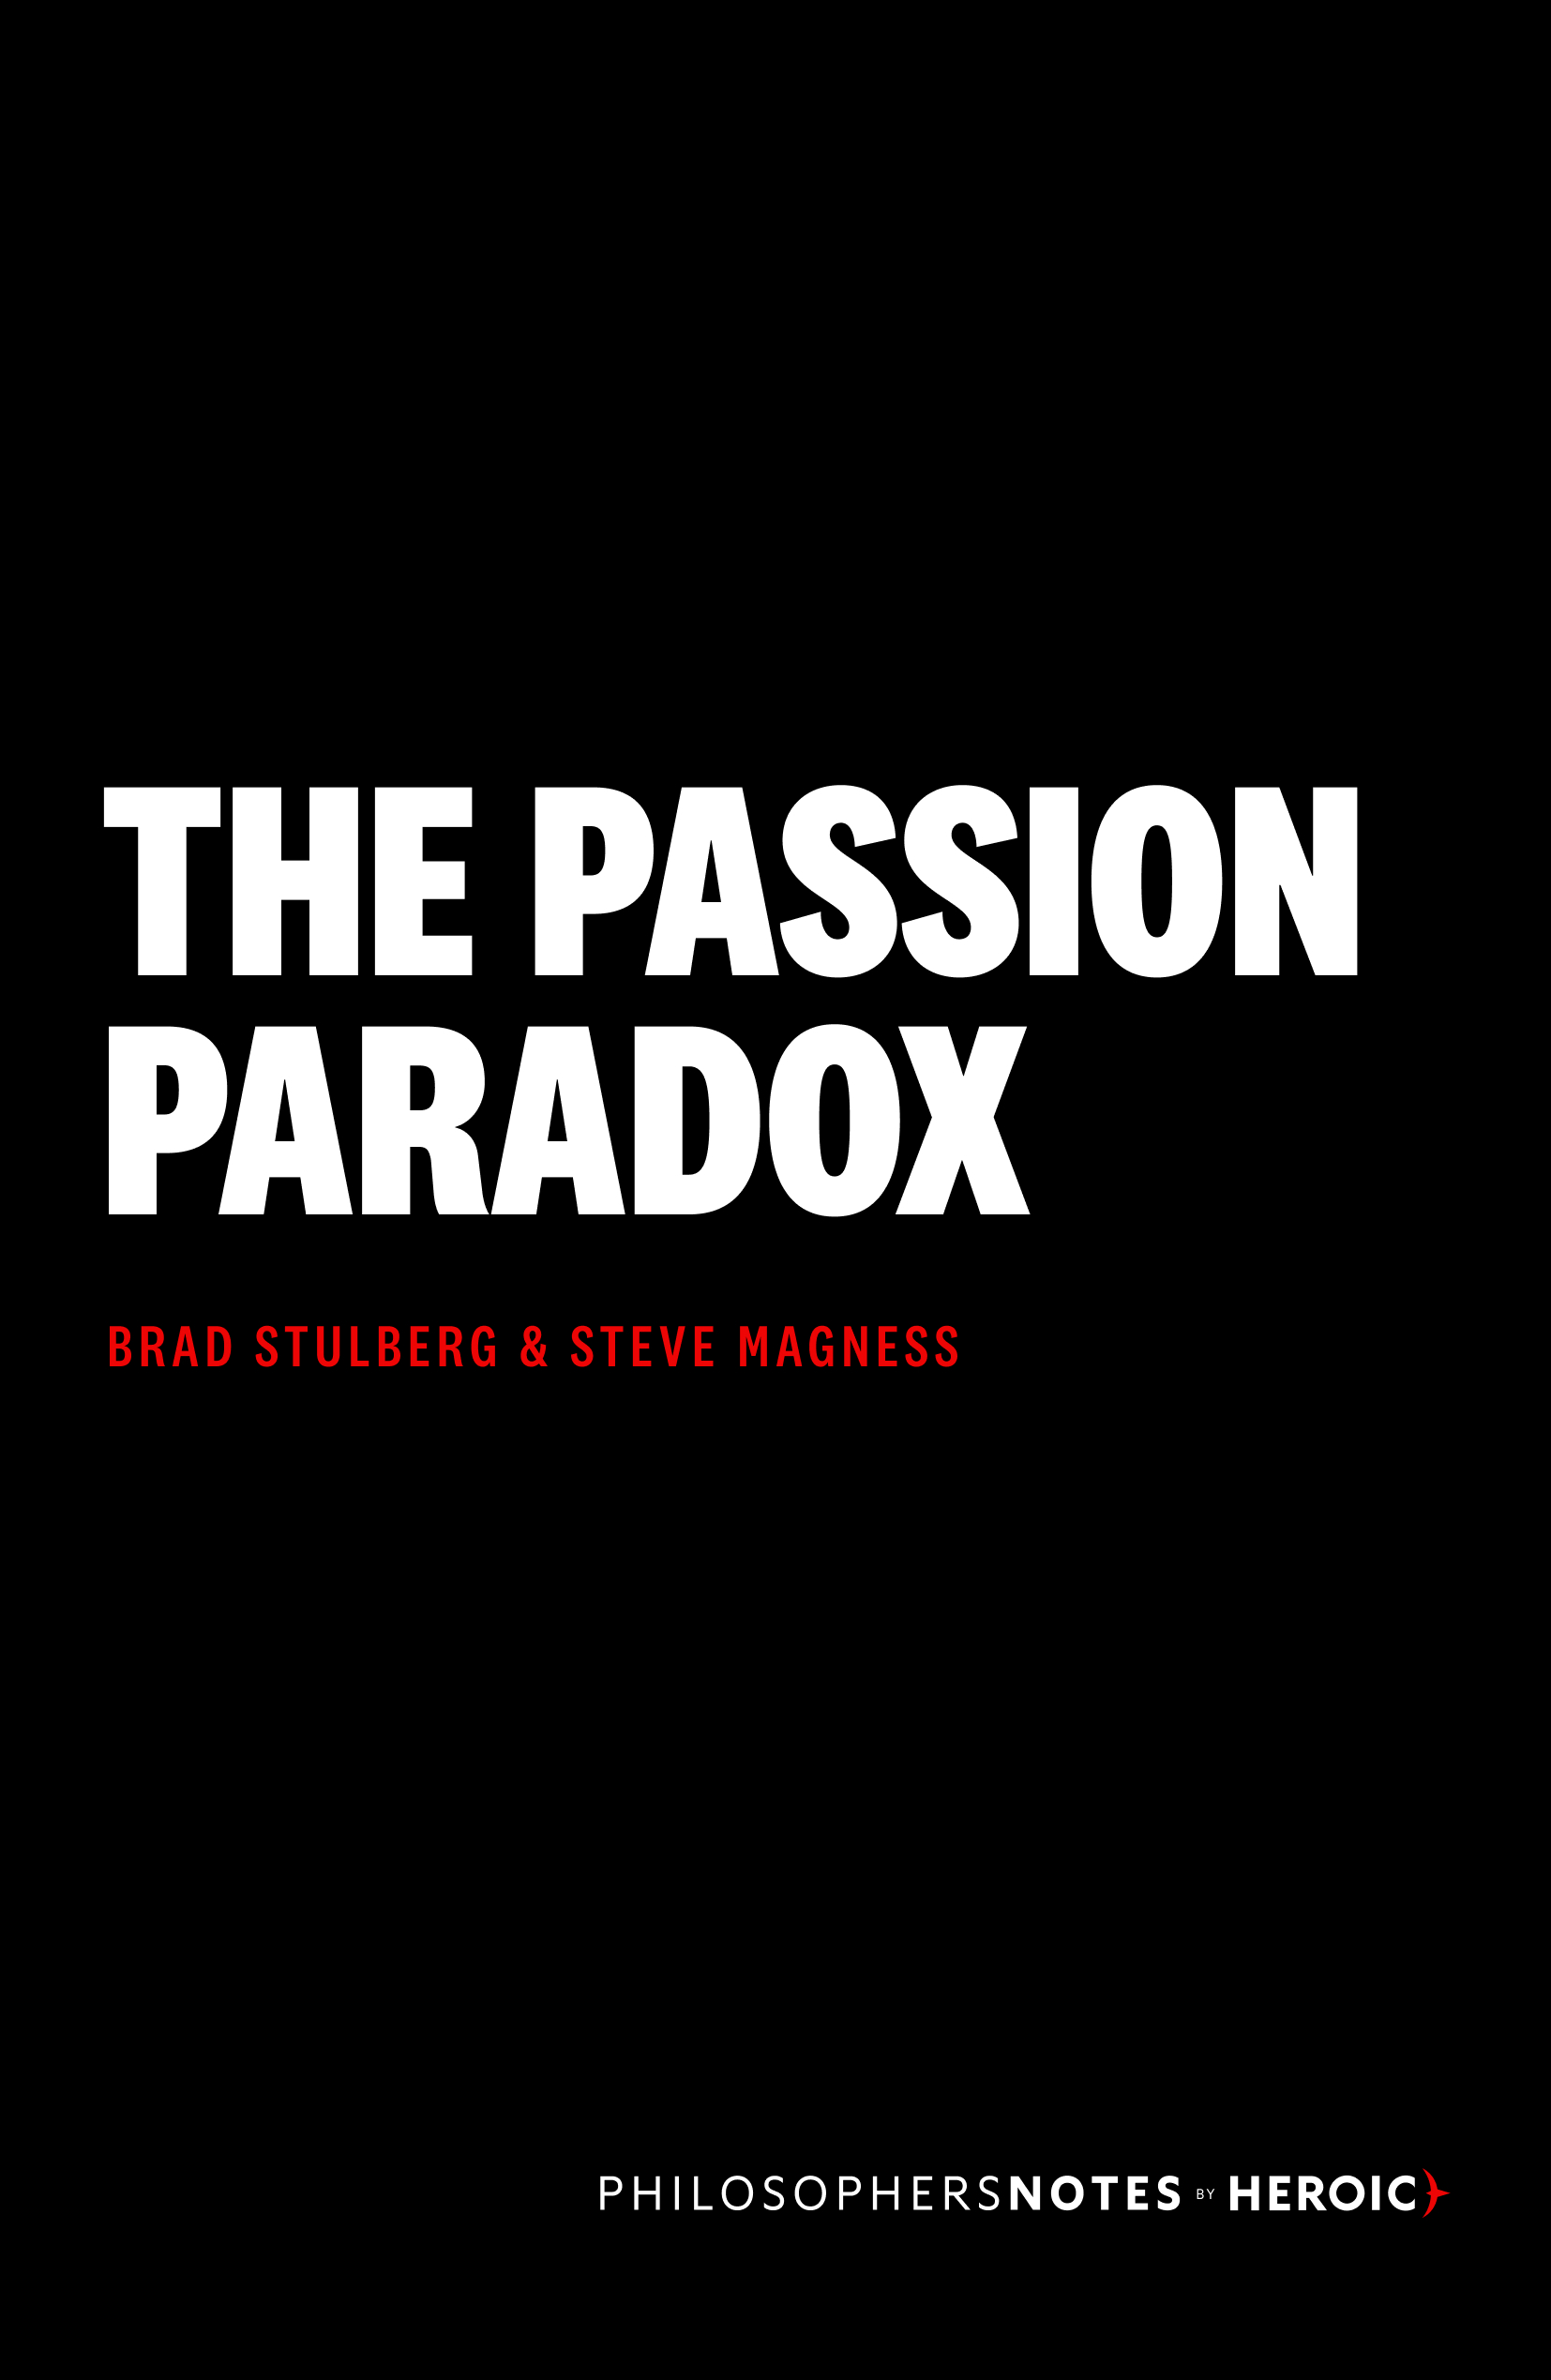 The Passion Paradox by Brad Stulberg, Steve Magness